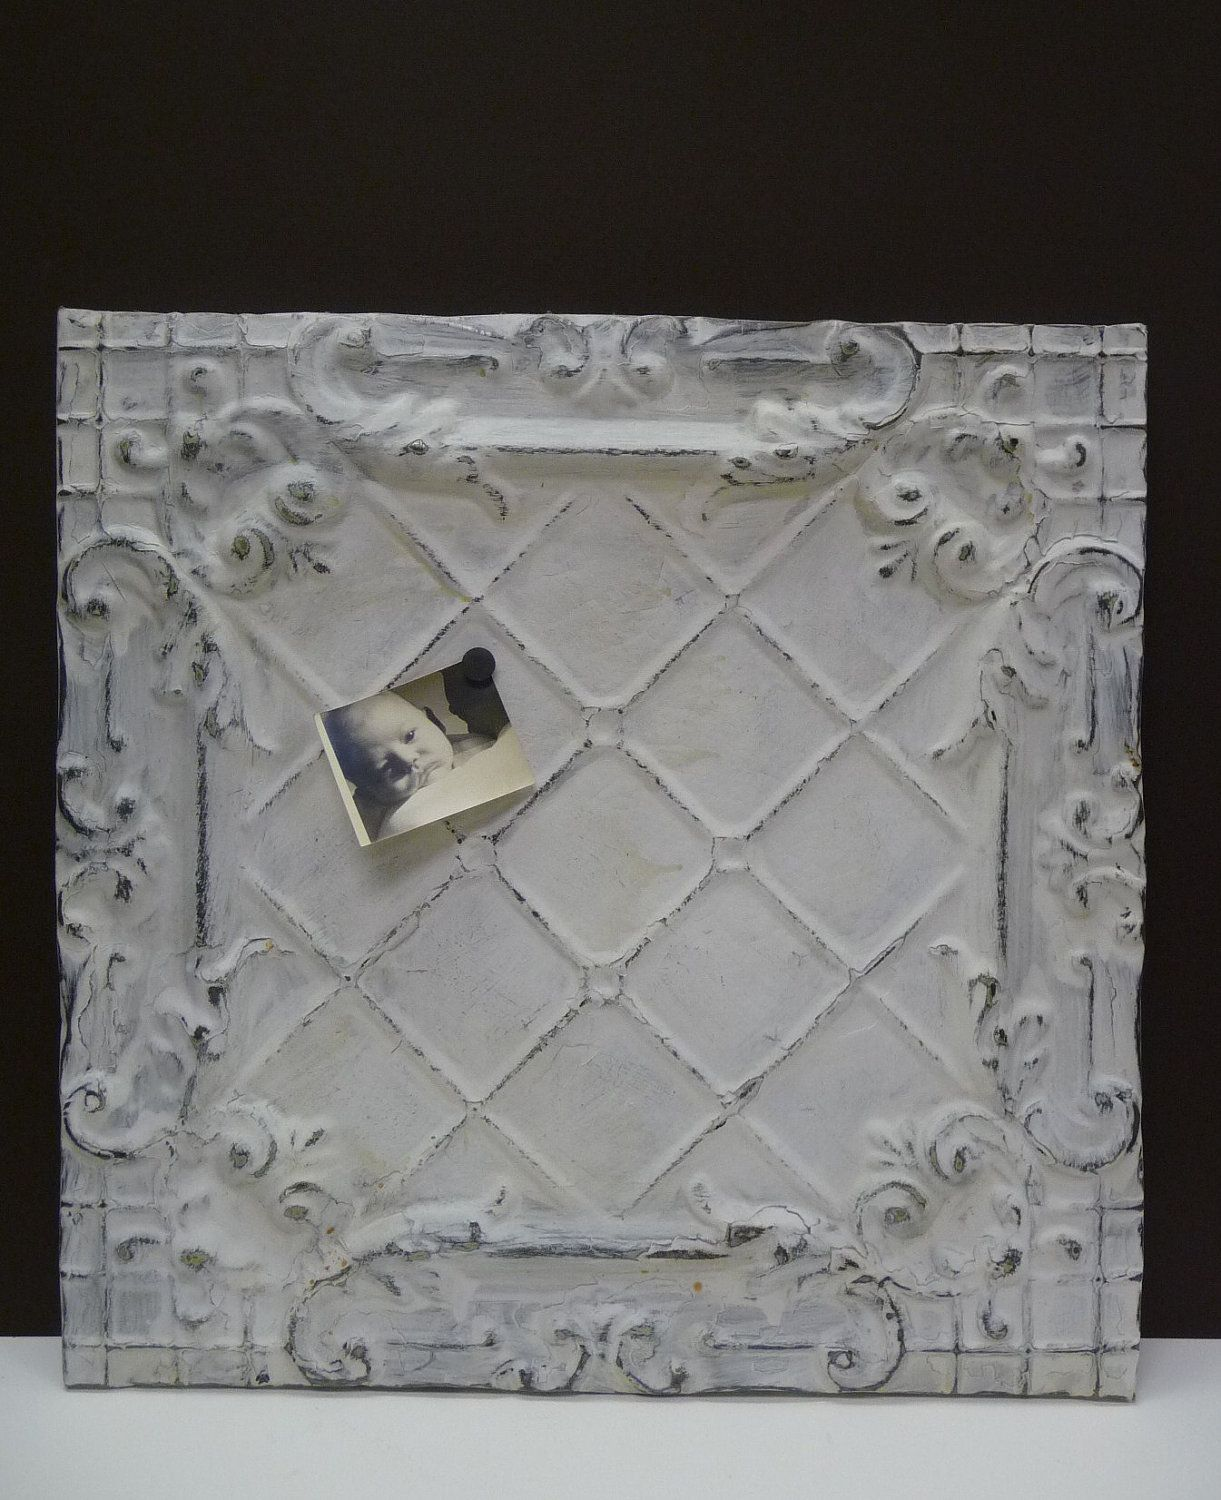 antique tin ceiling tile magnet message board large chippy white decorative panel